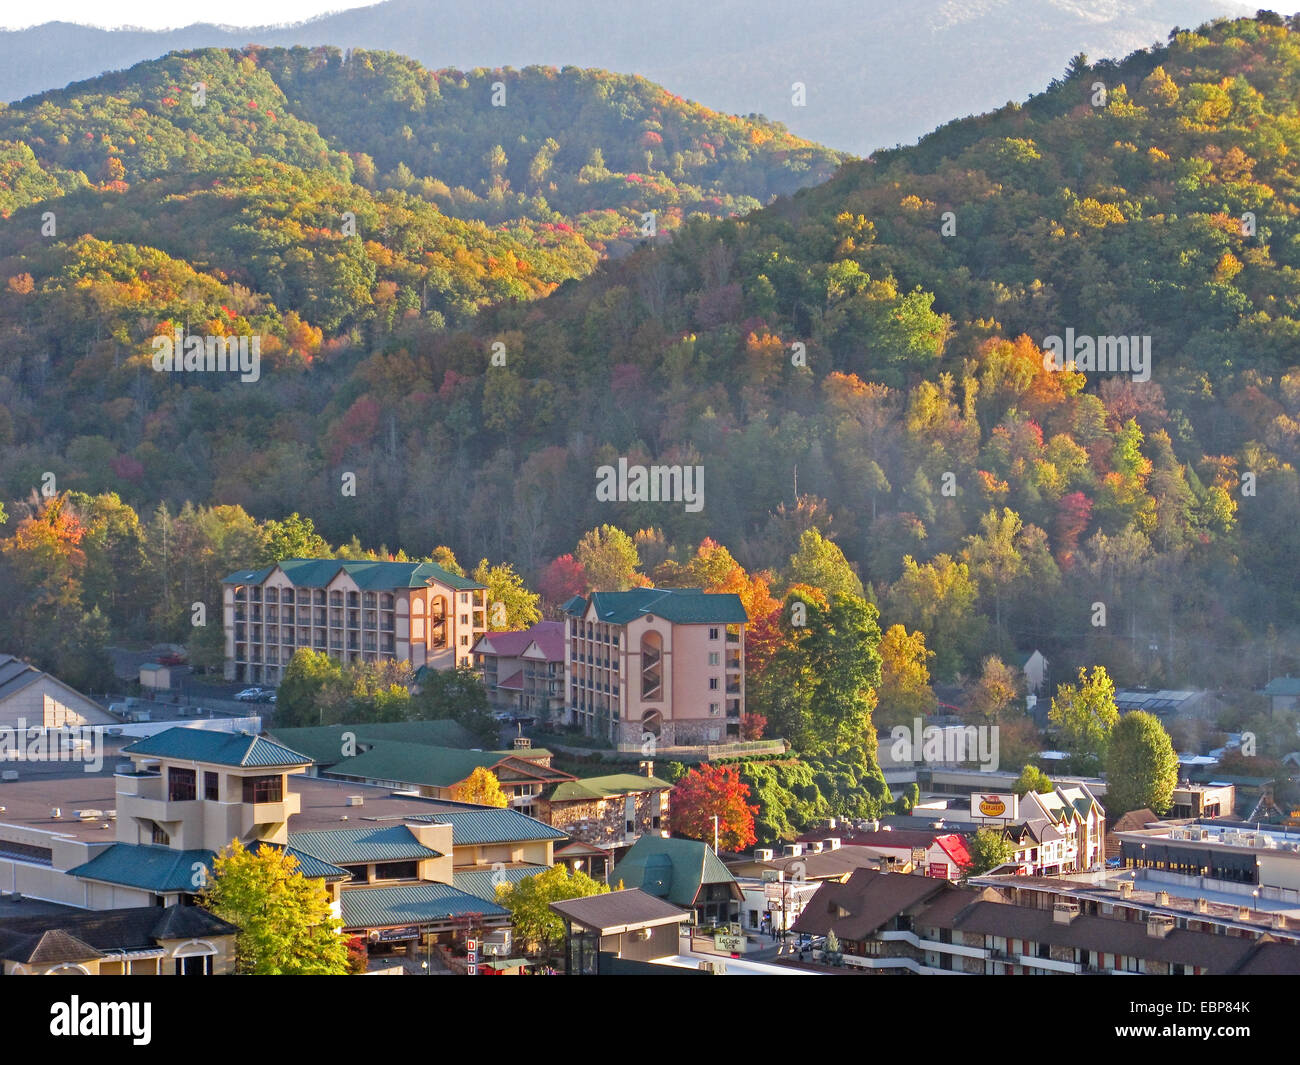 Gatlinburg, Tennessee, next to Great Smoky Mountains National Park, in autumn. - Stock Image